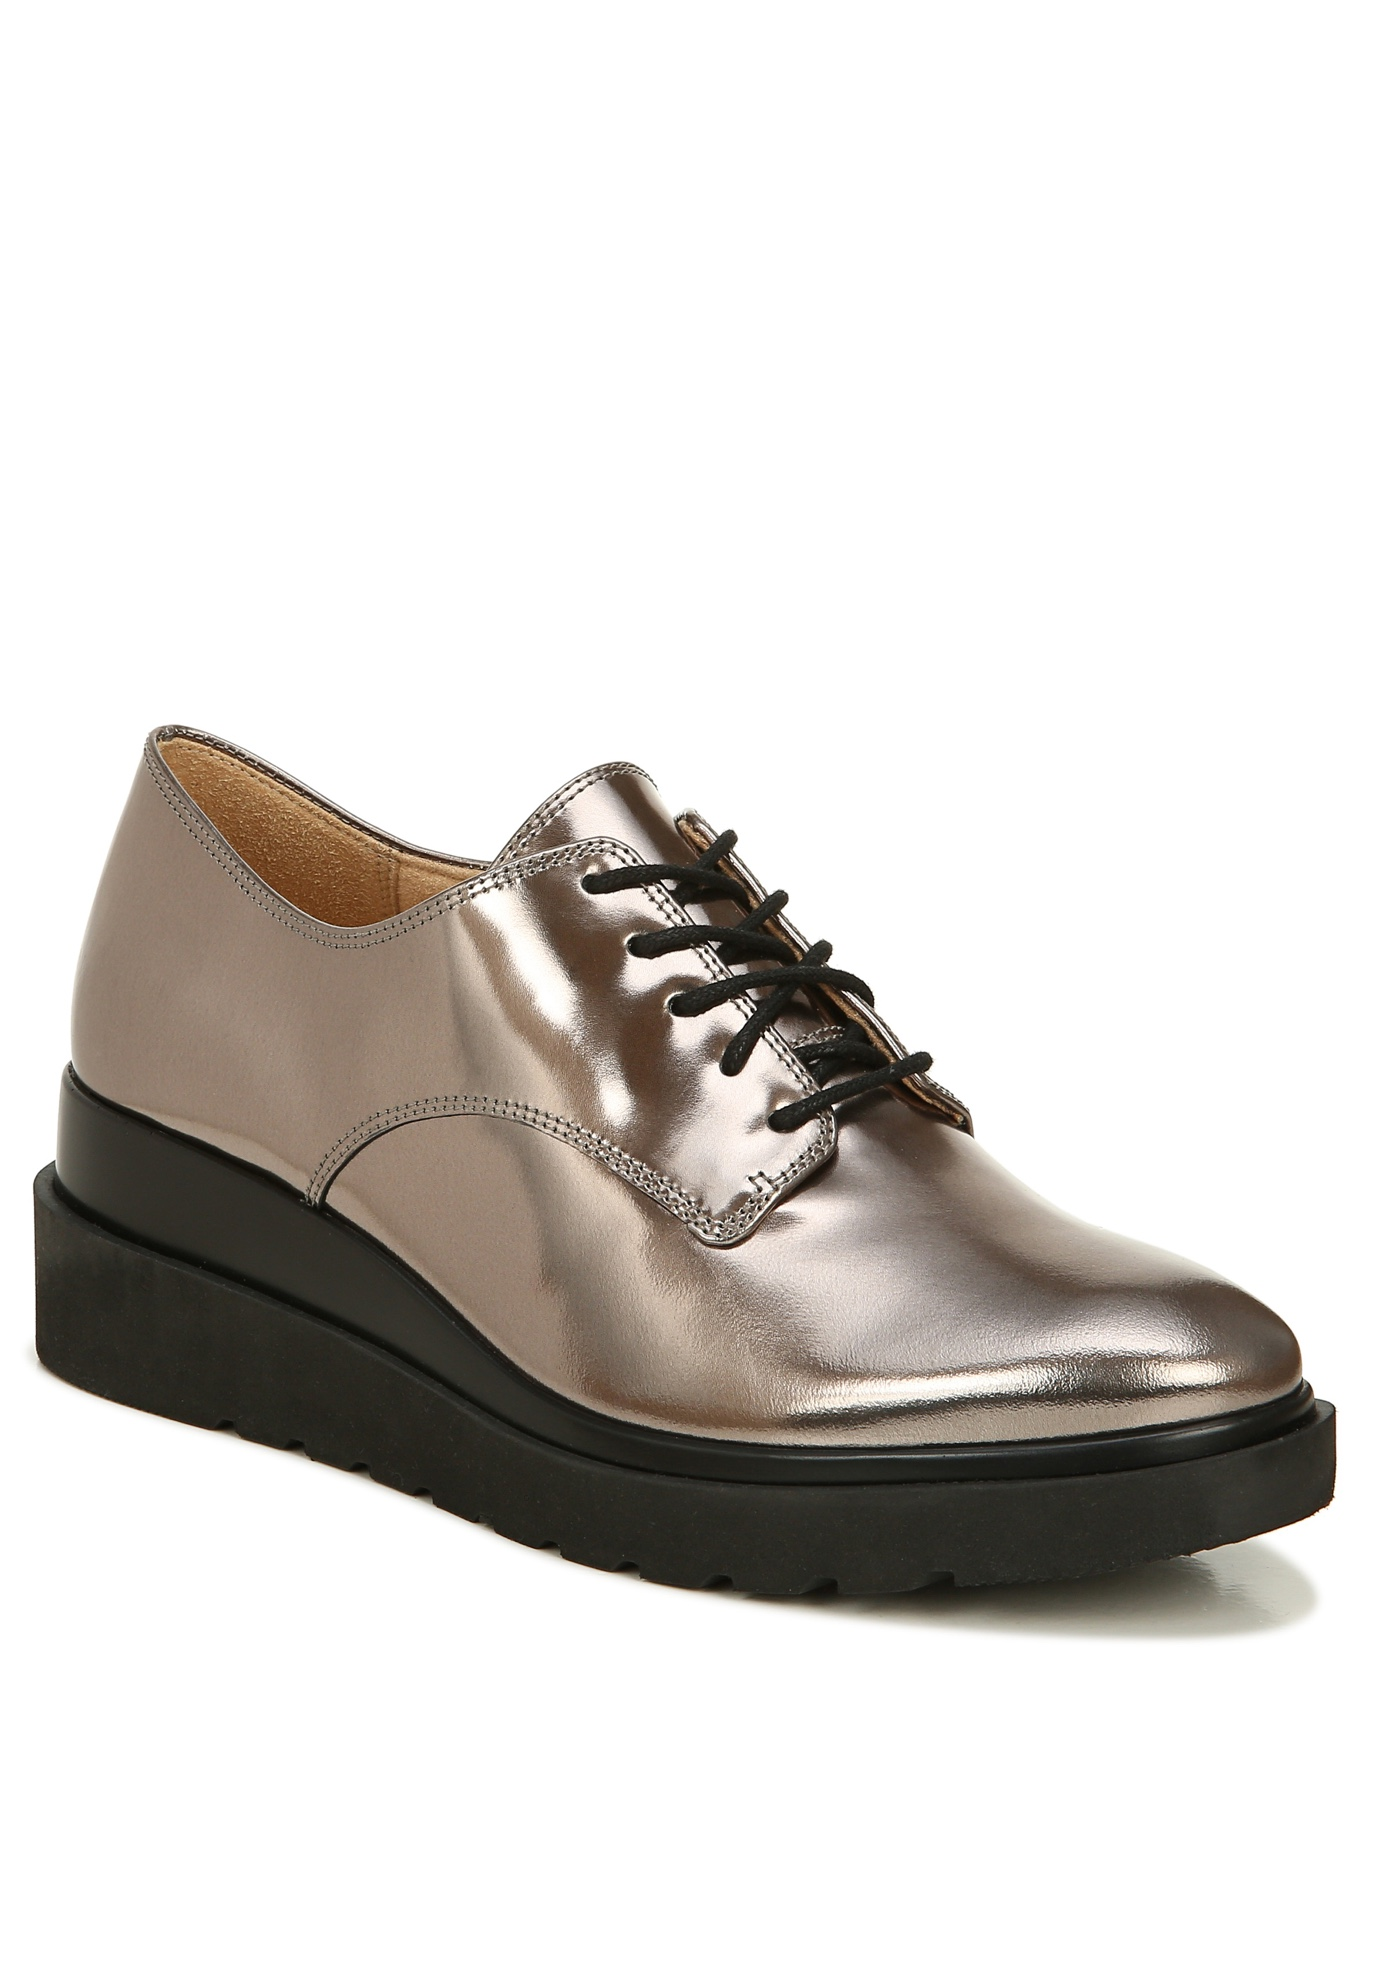 Sonoma Dress Shoes by Naturalizer,